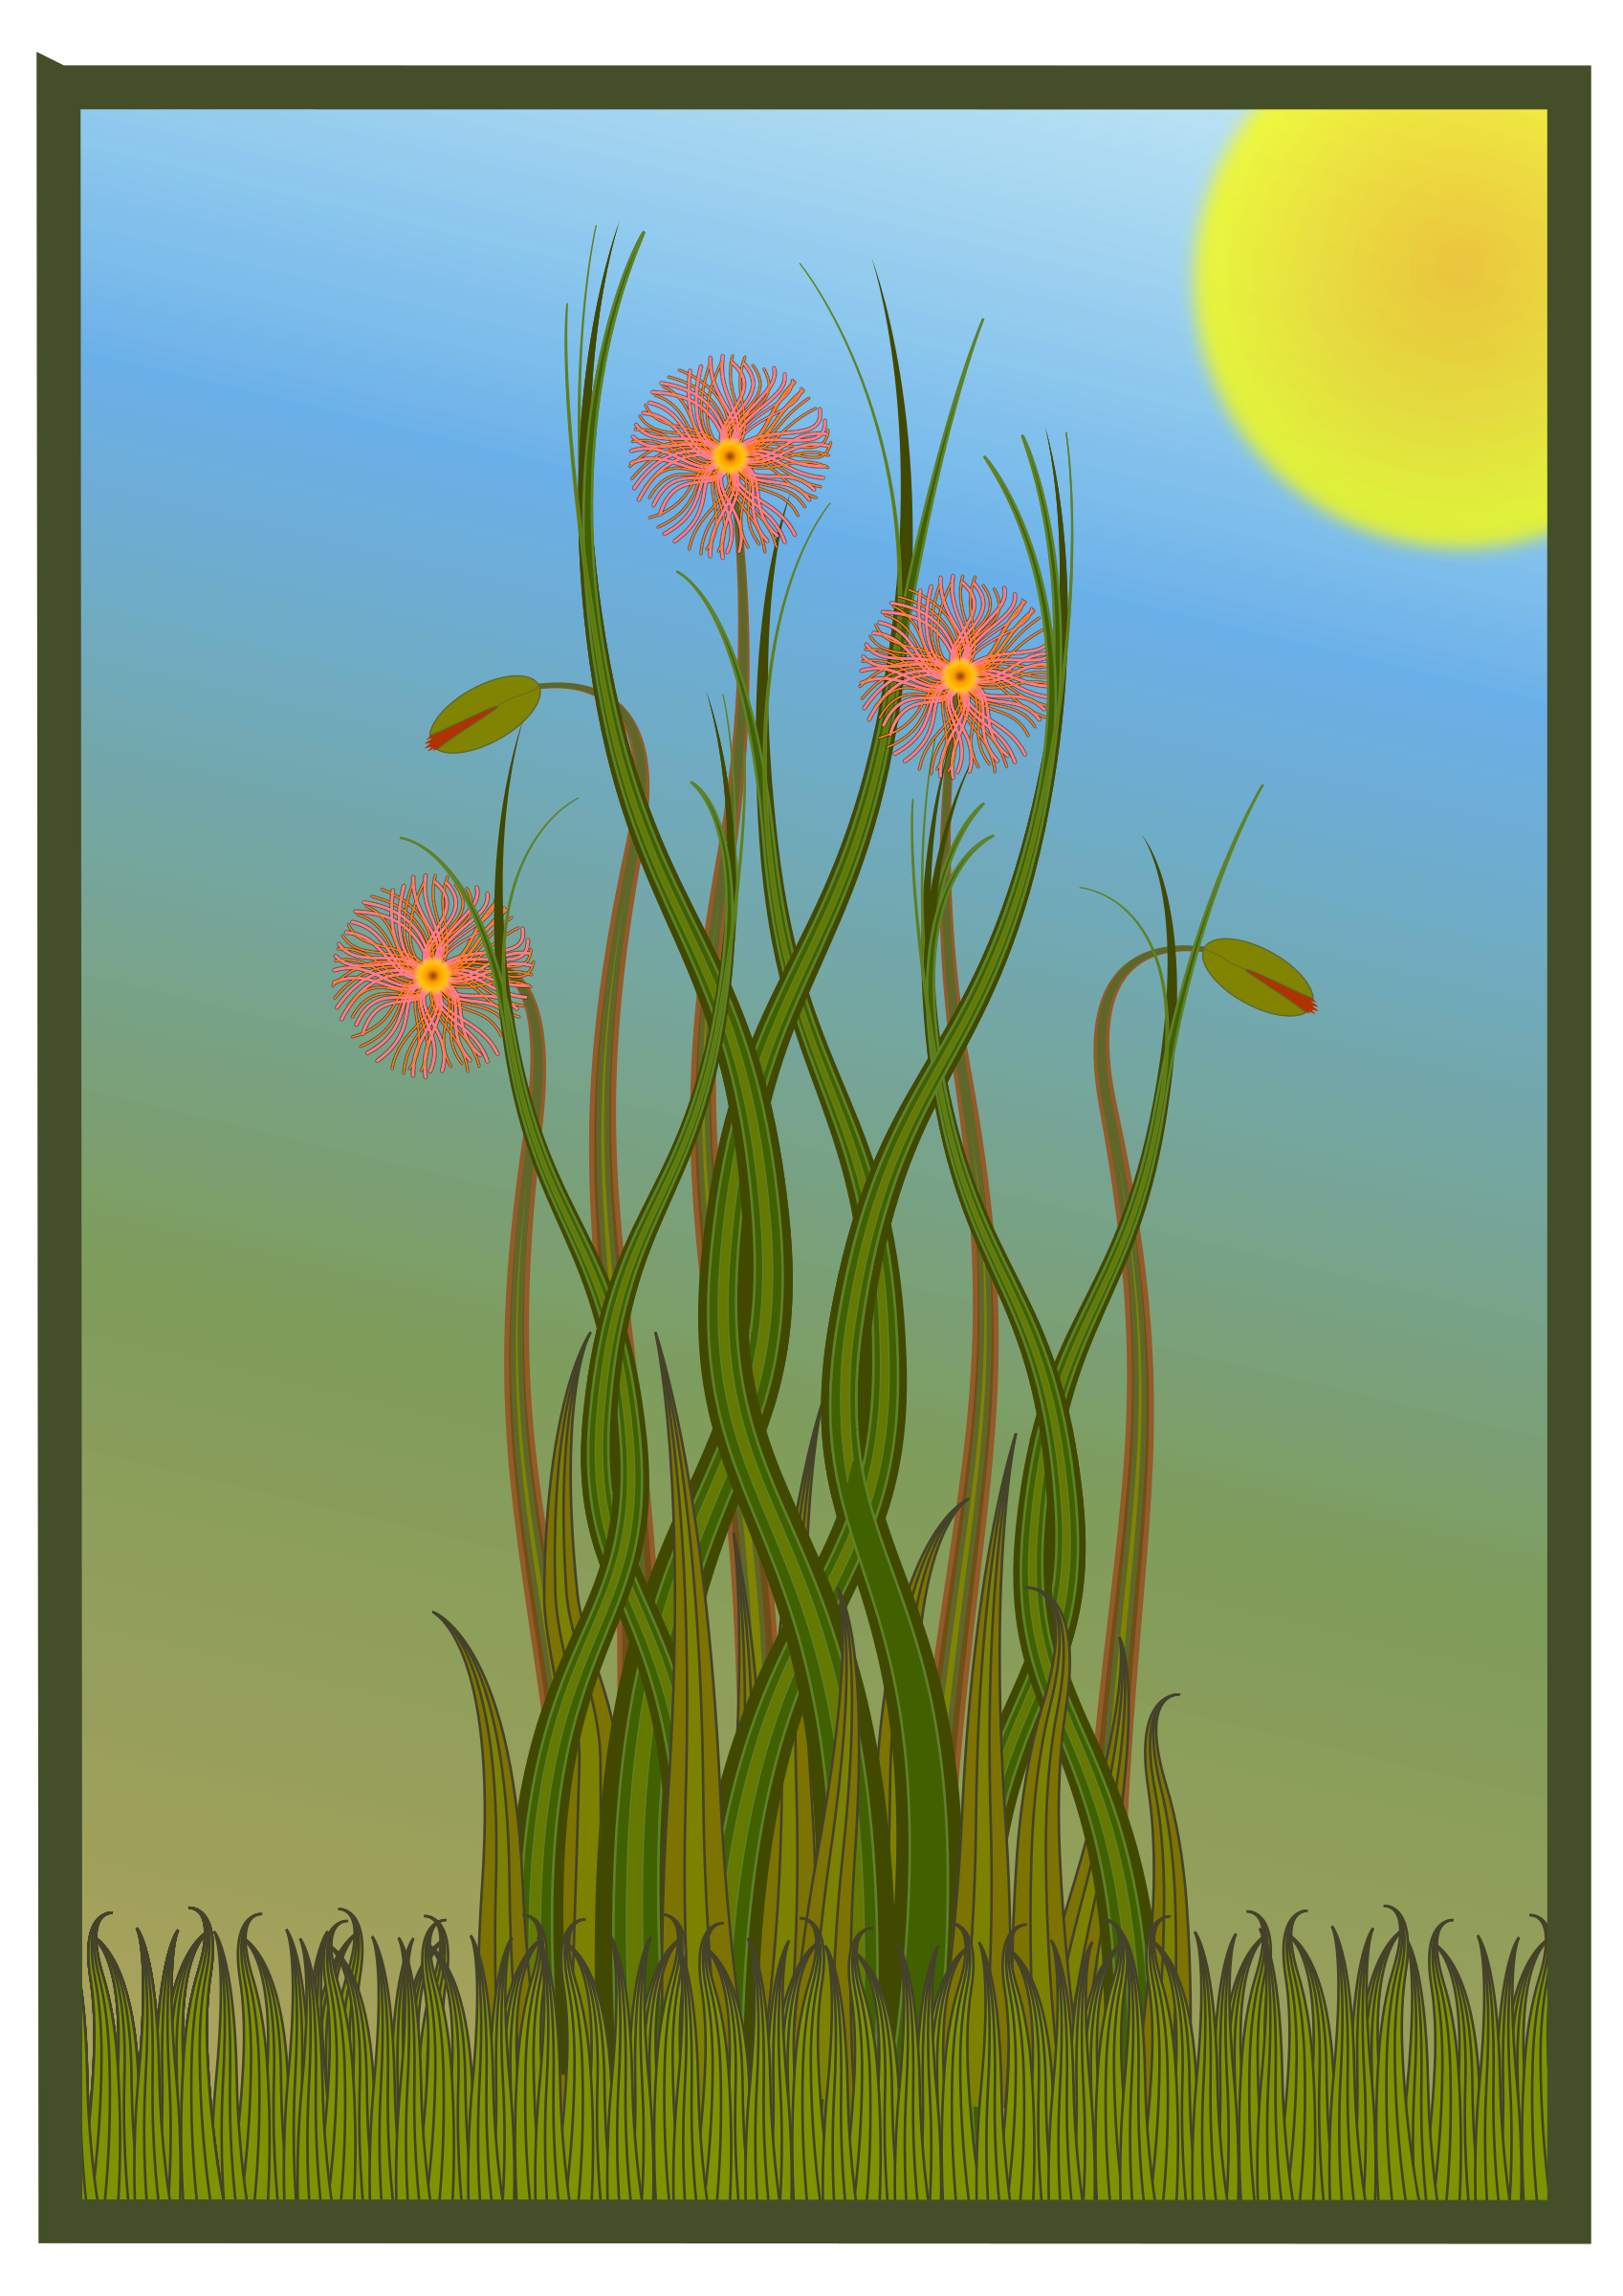 Grass and Flowers by Greg.M